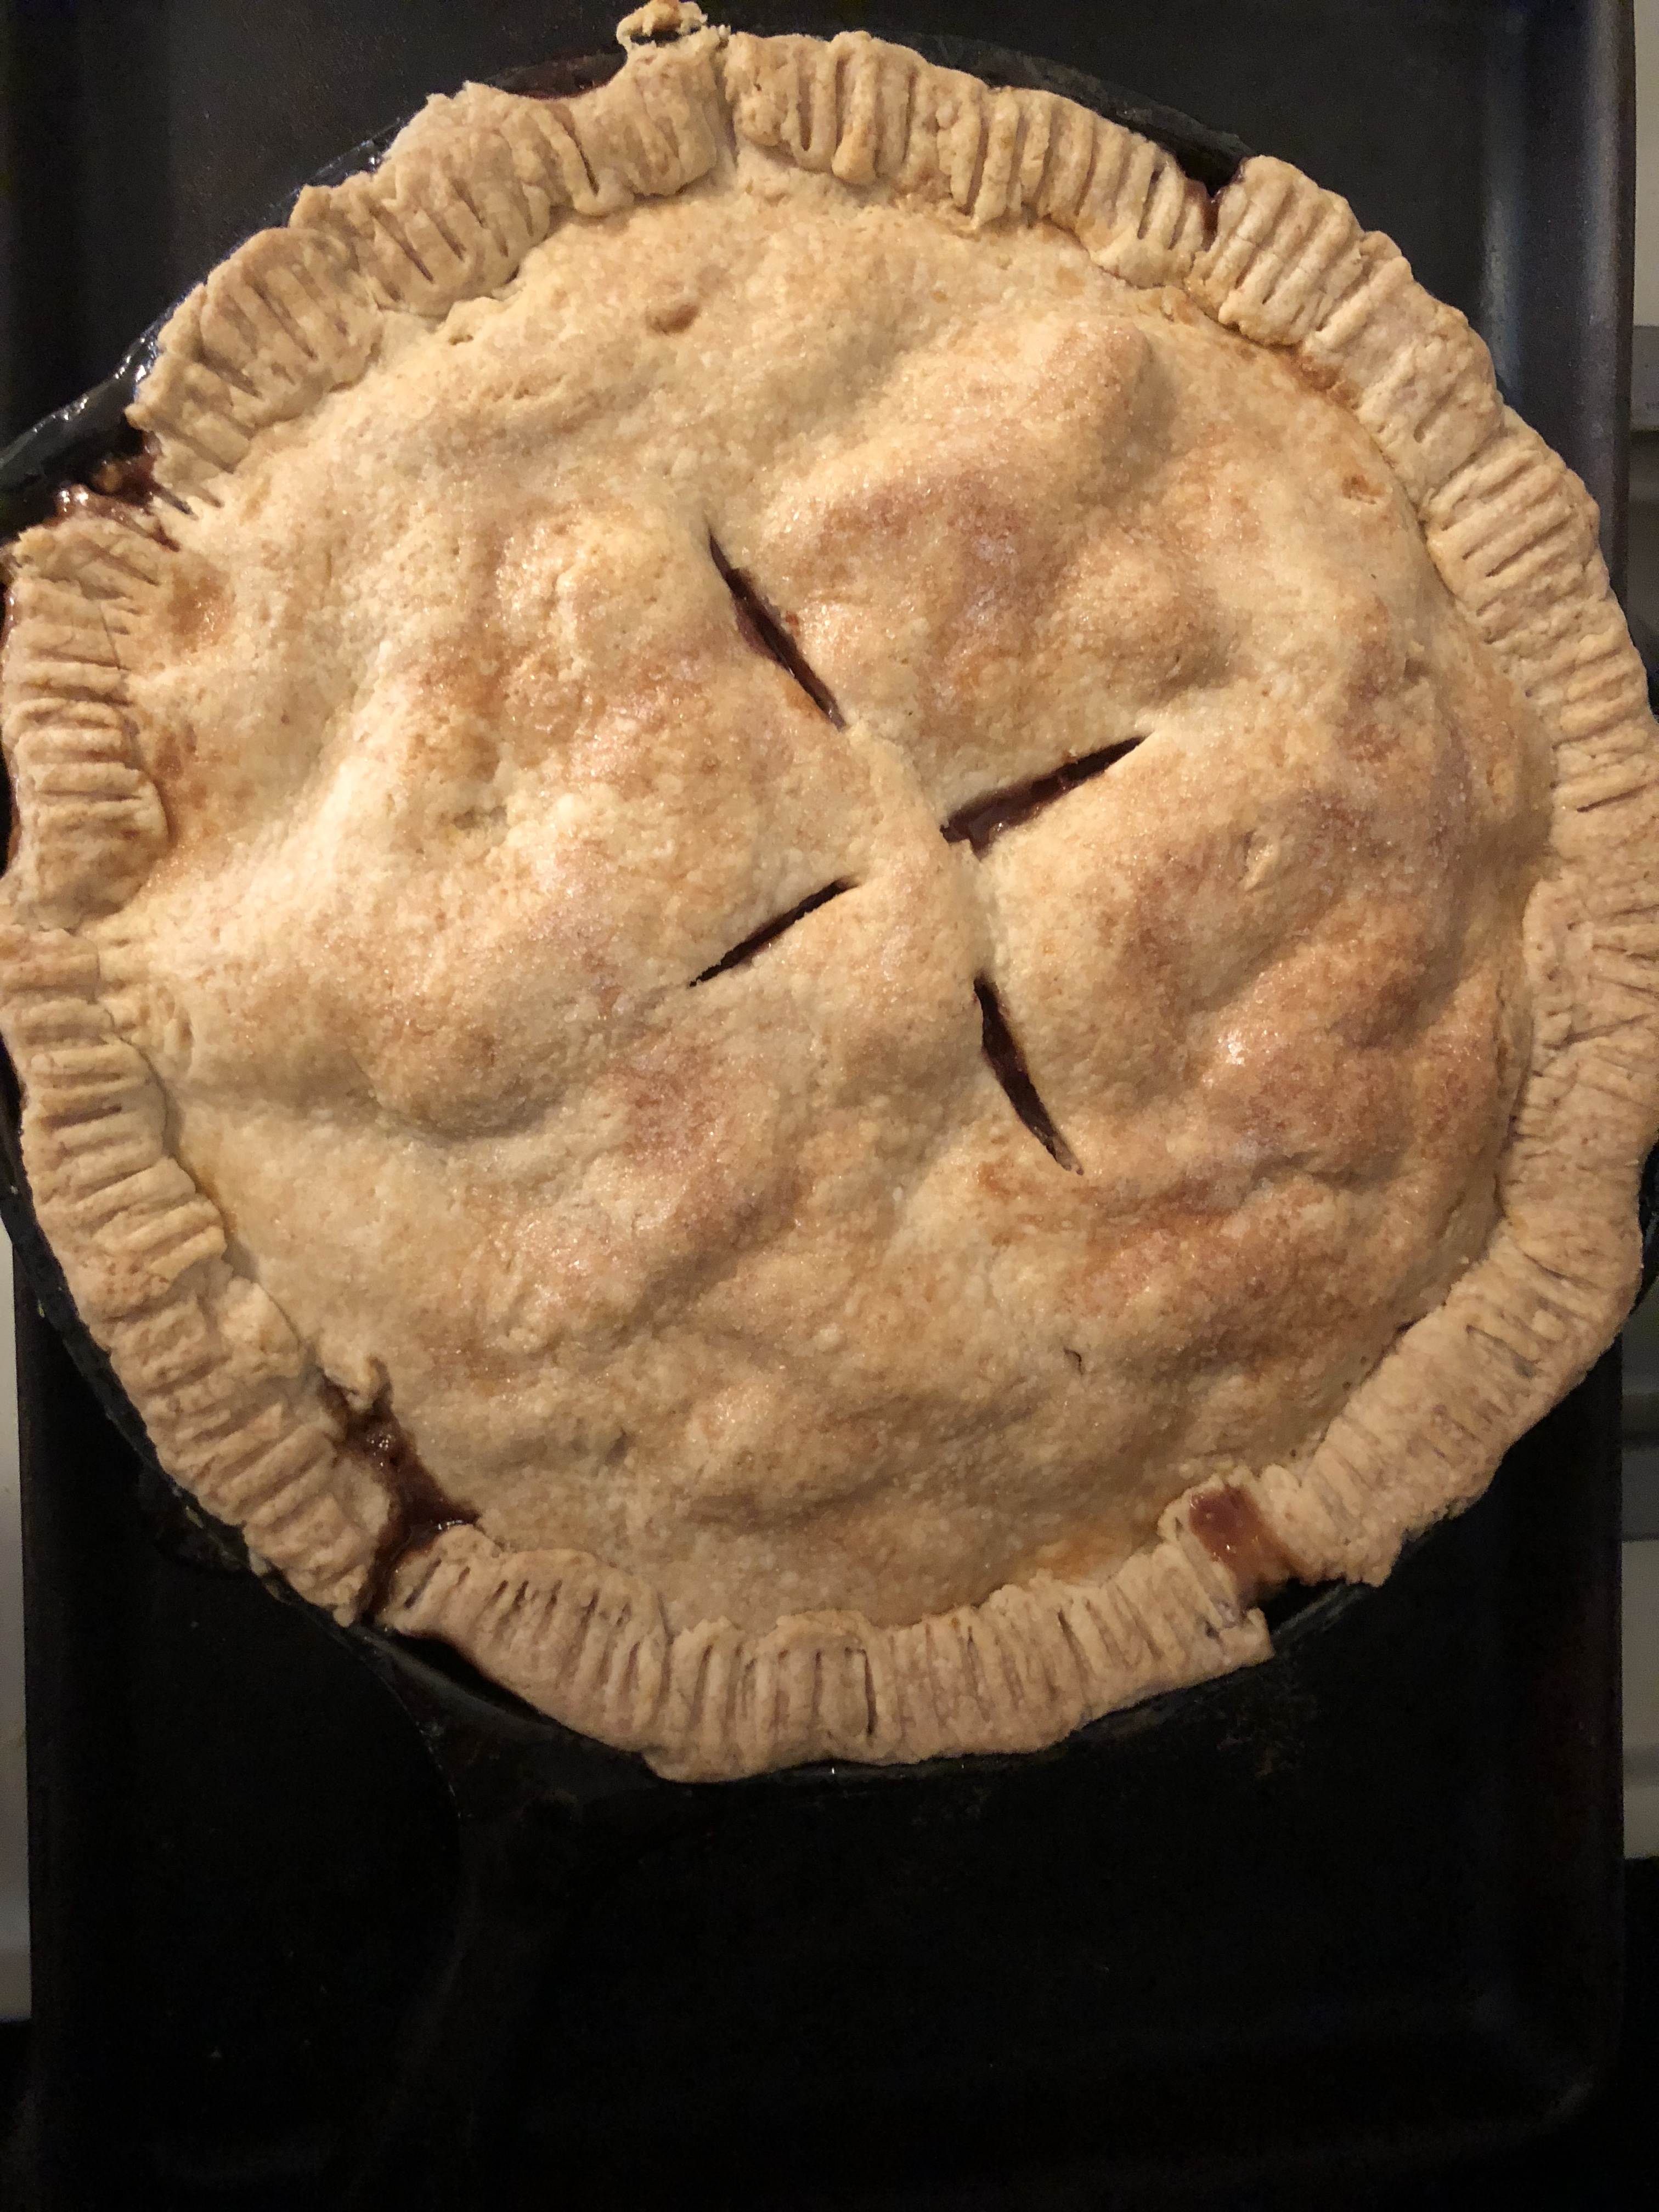 Grandma's Iron Skillet Apple Pie kjngrl@gmail.com